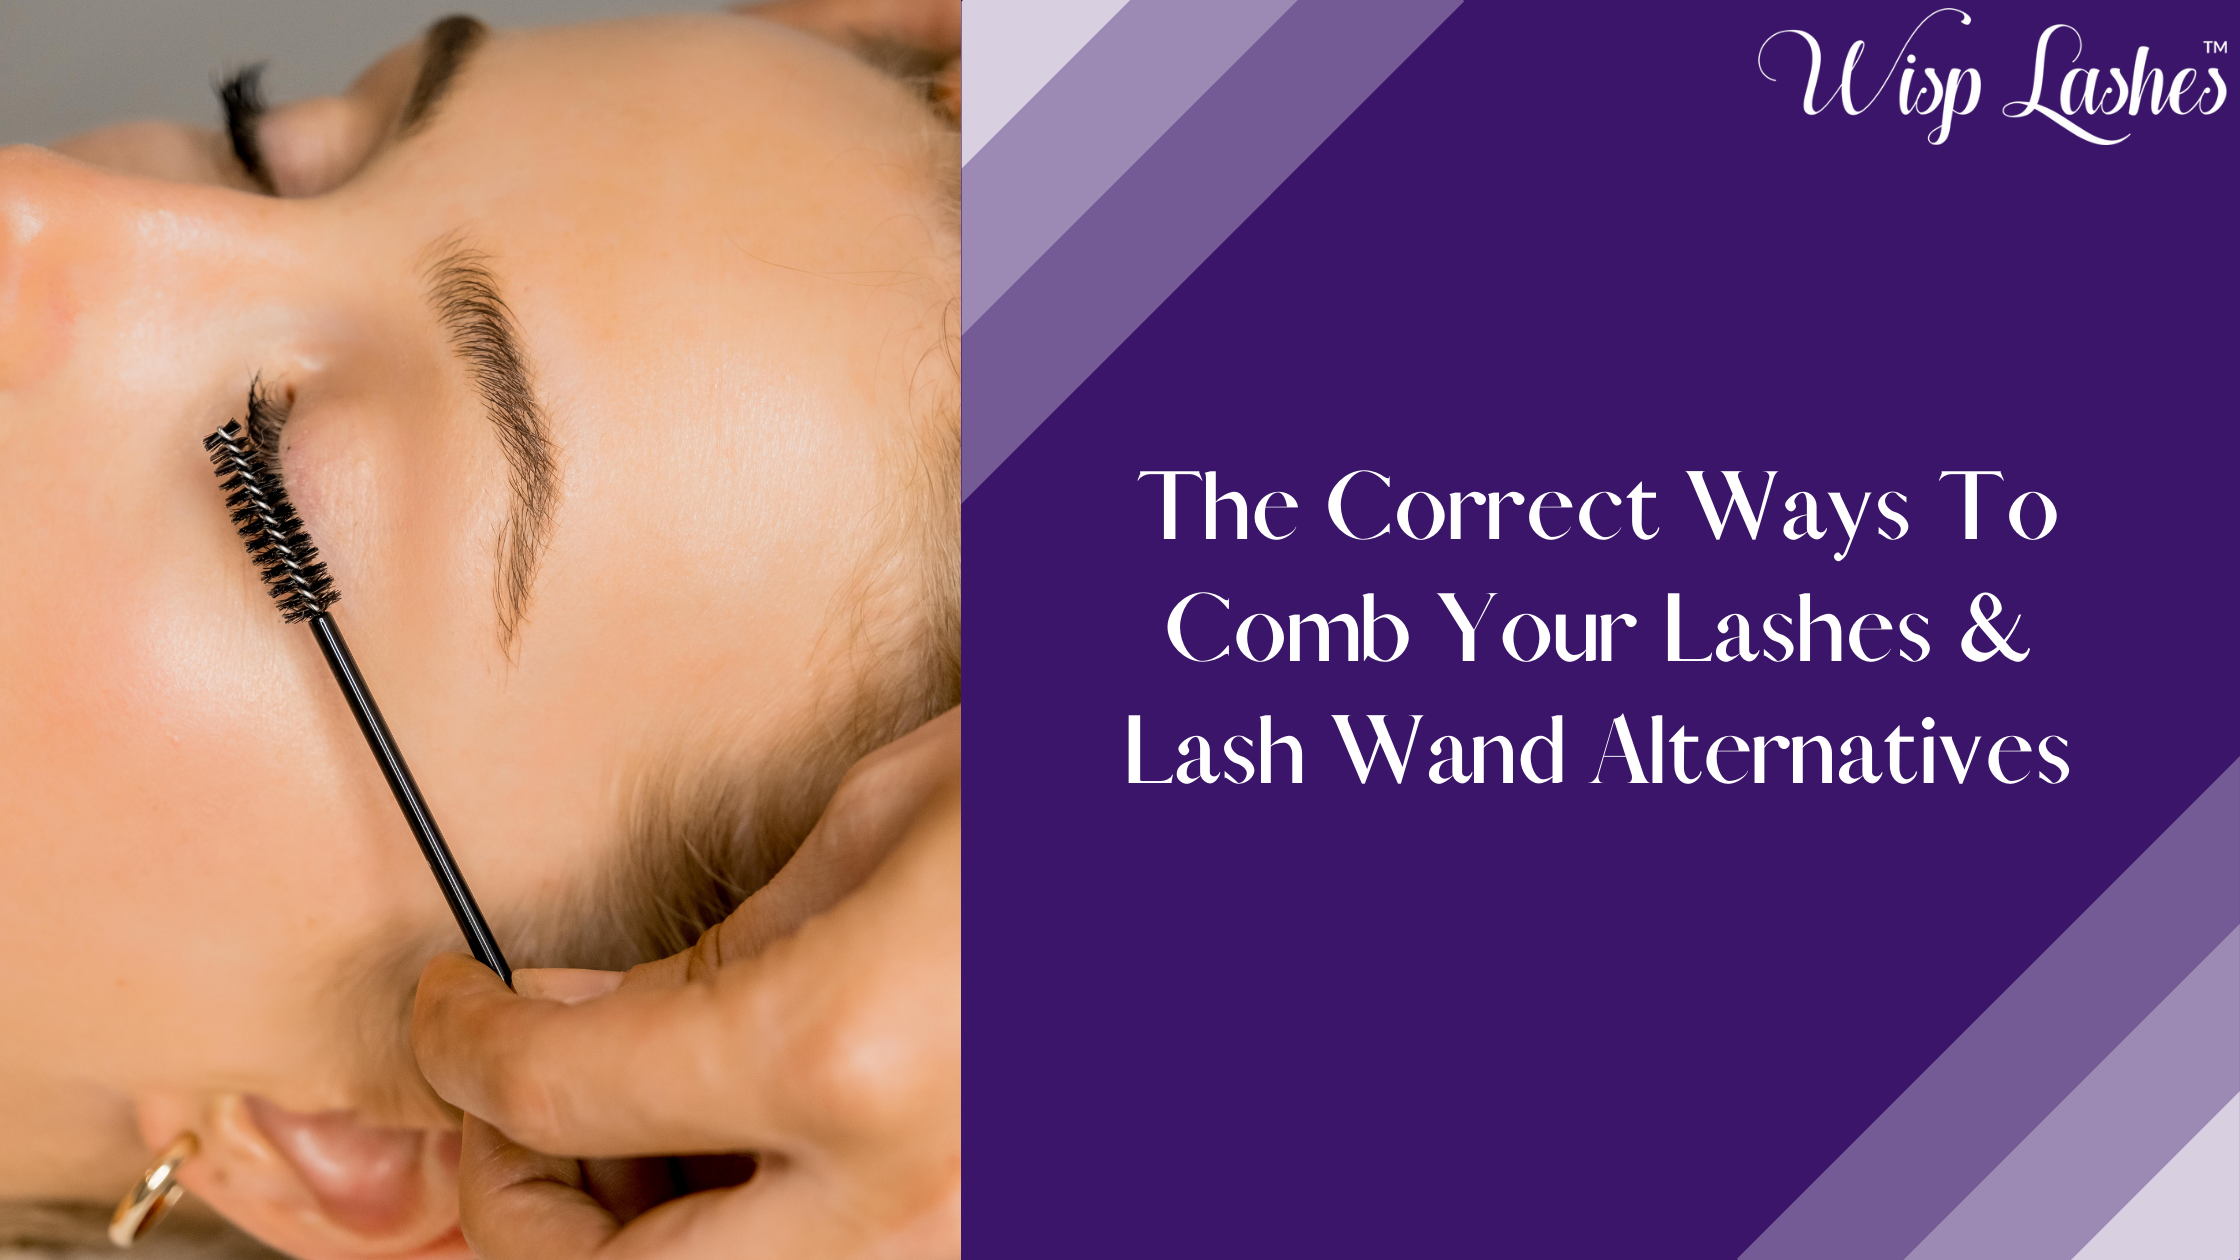 The Correct Ways To Comb Your Lashes & Lash Wand Alternatives